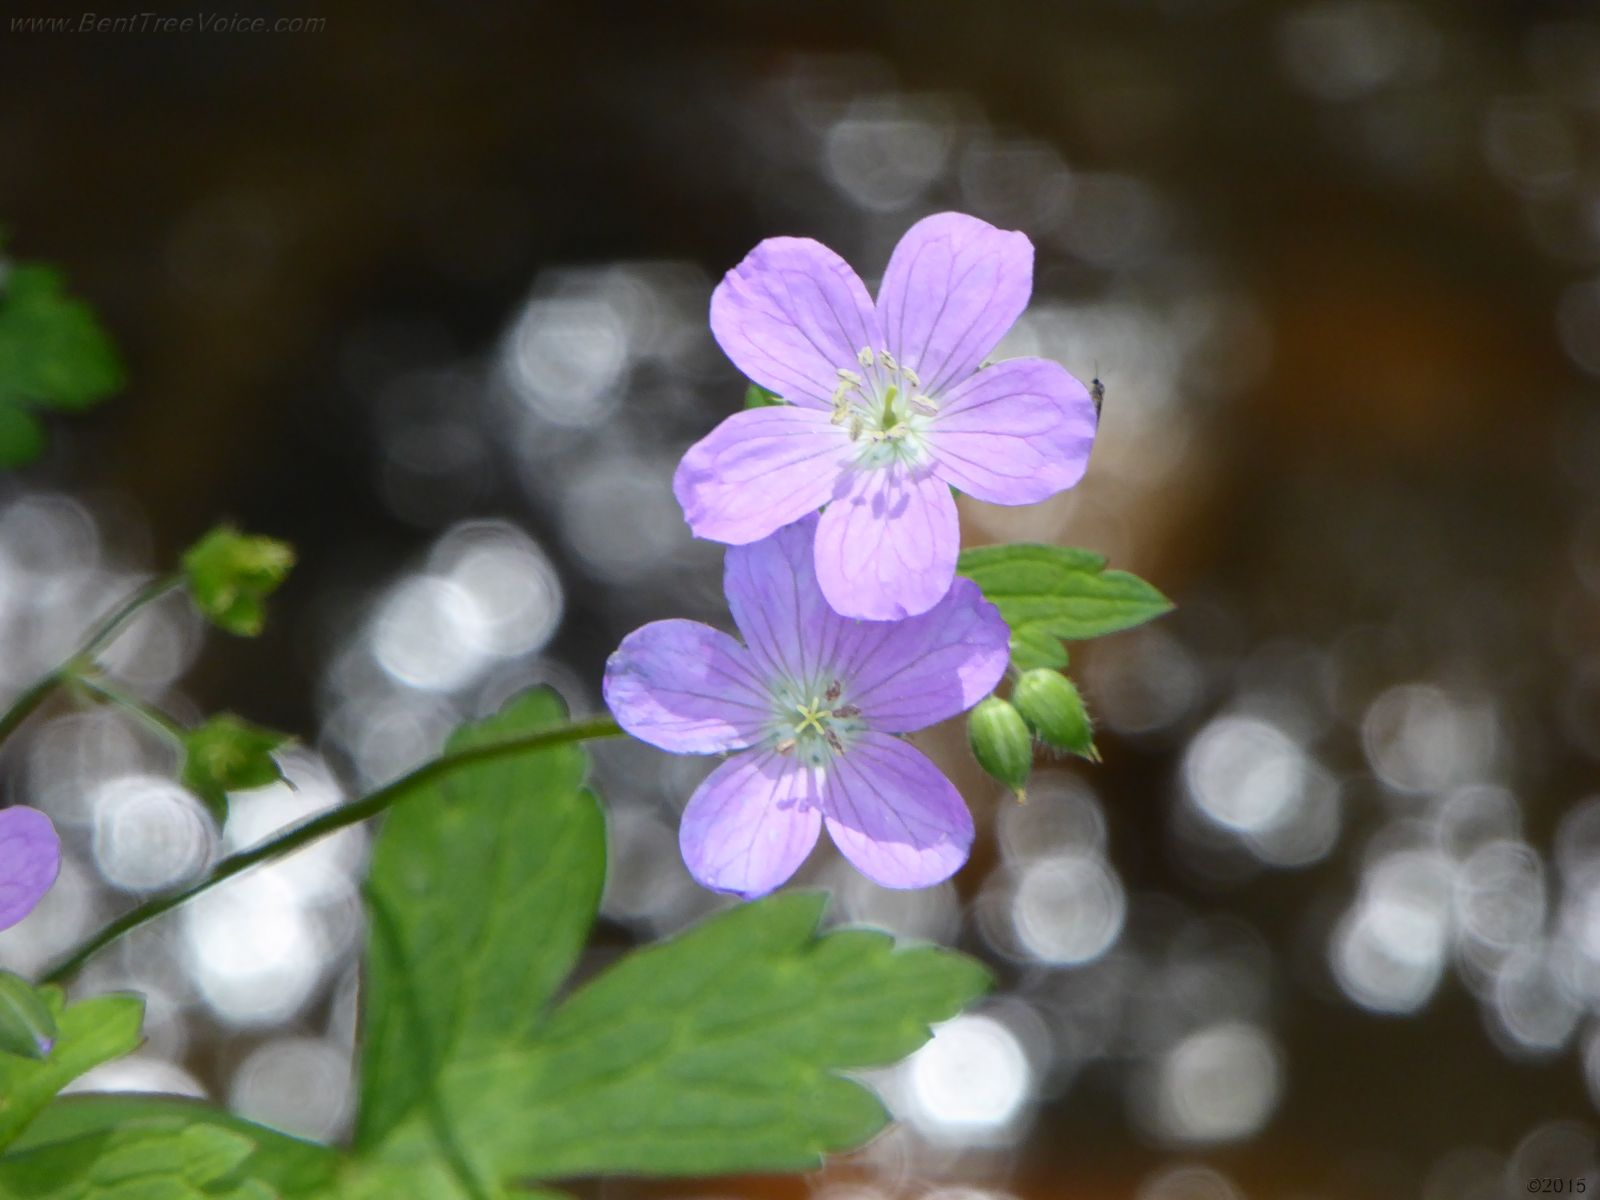 April 24, 2015 - Wild Geranium in Bent Tree